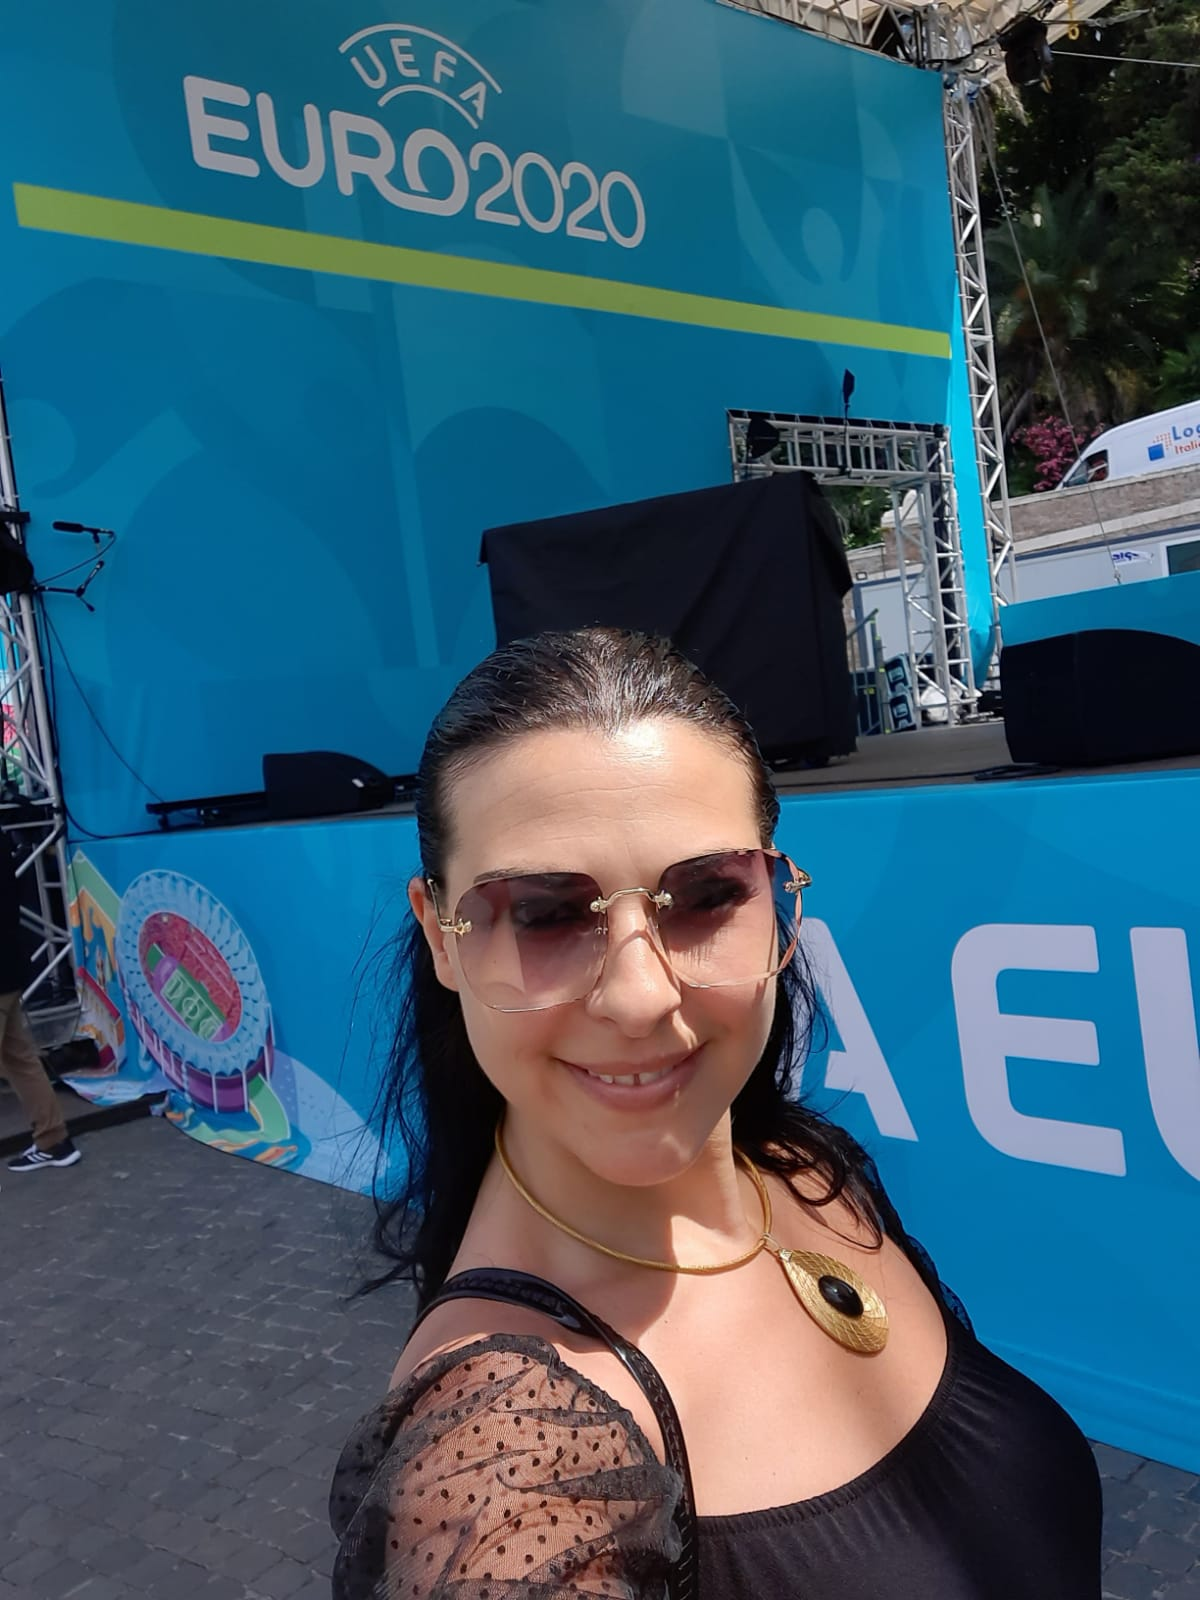 You are currently viewing PAMELA D'AMICO AO VIVO LIVE BRASIL 5 LUGLIO ALLE 19.30